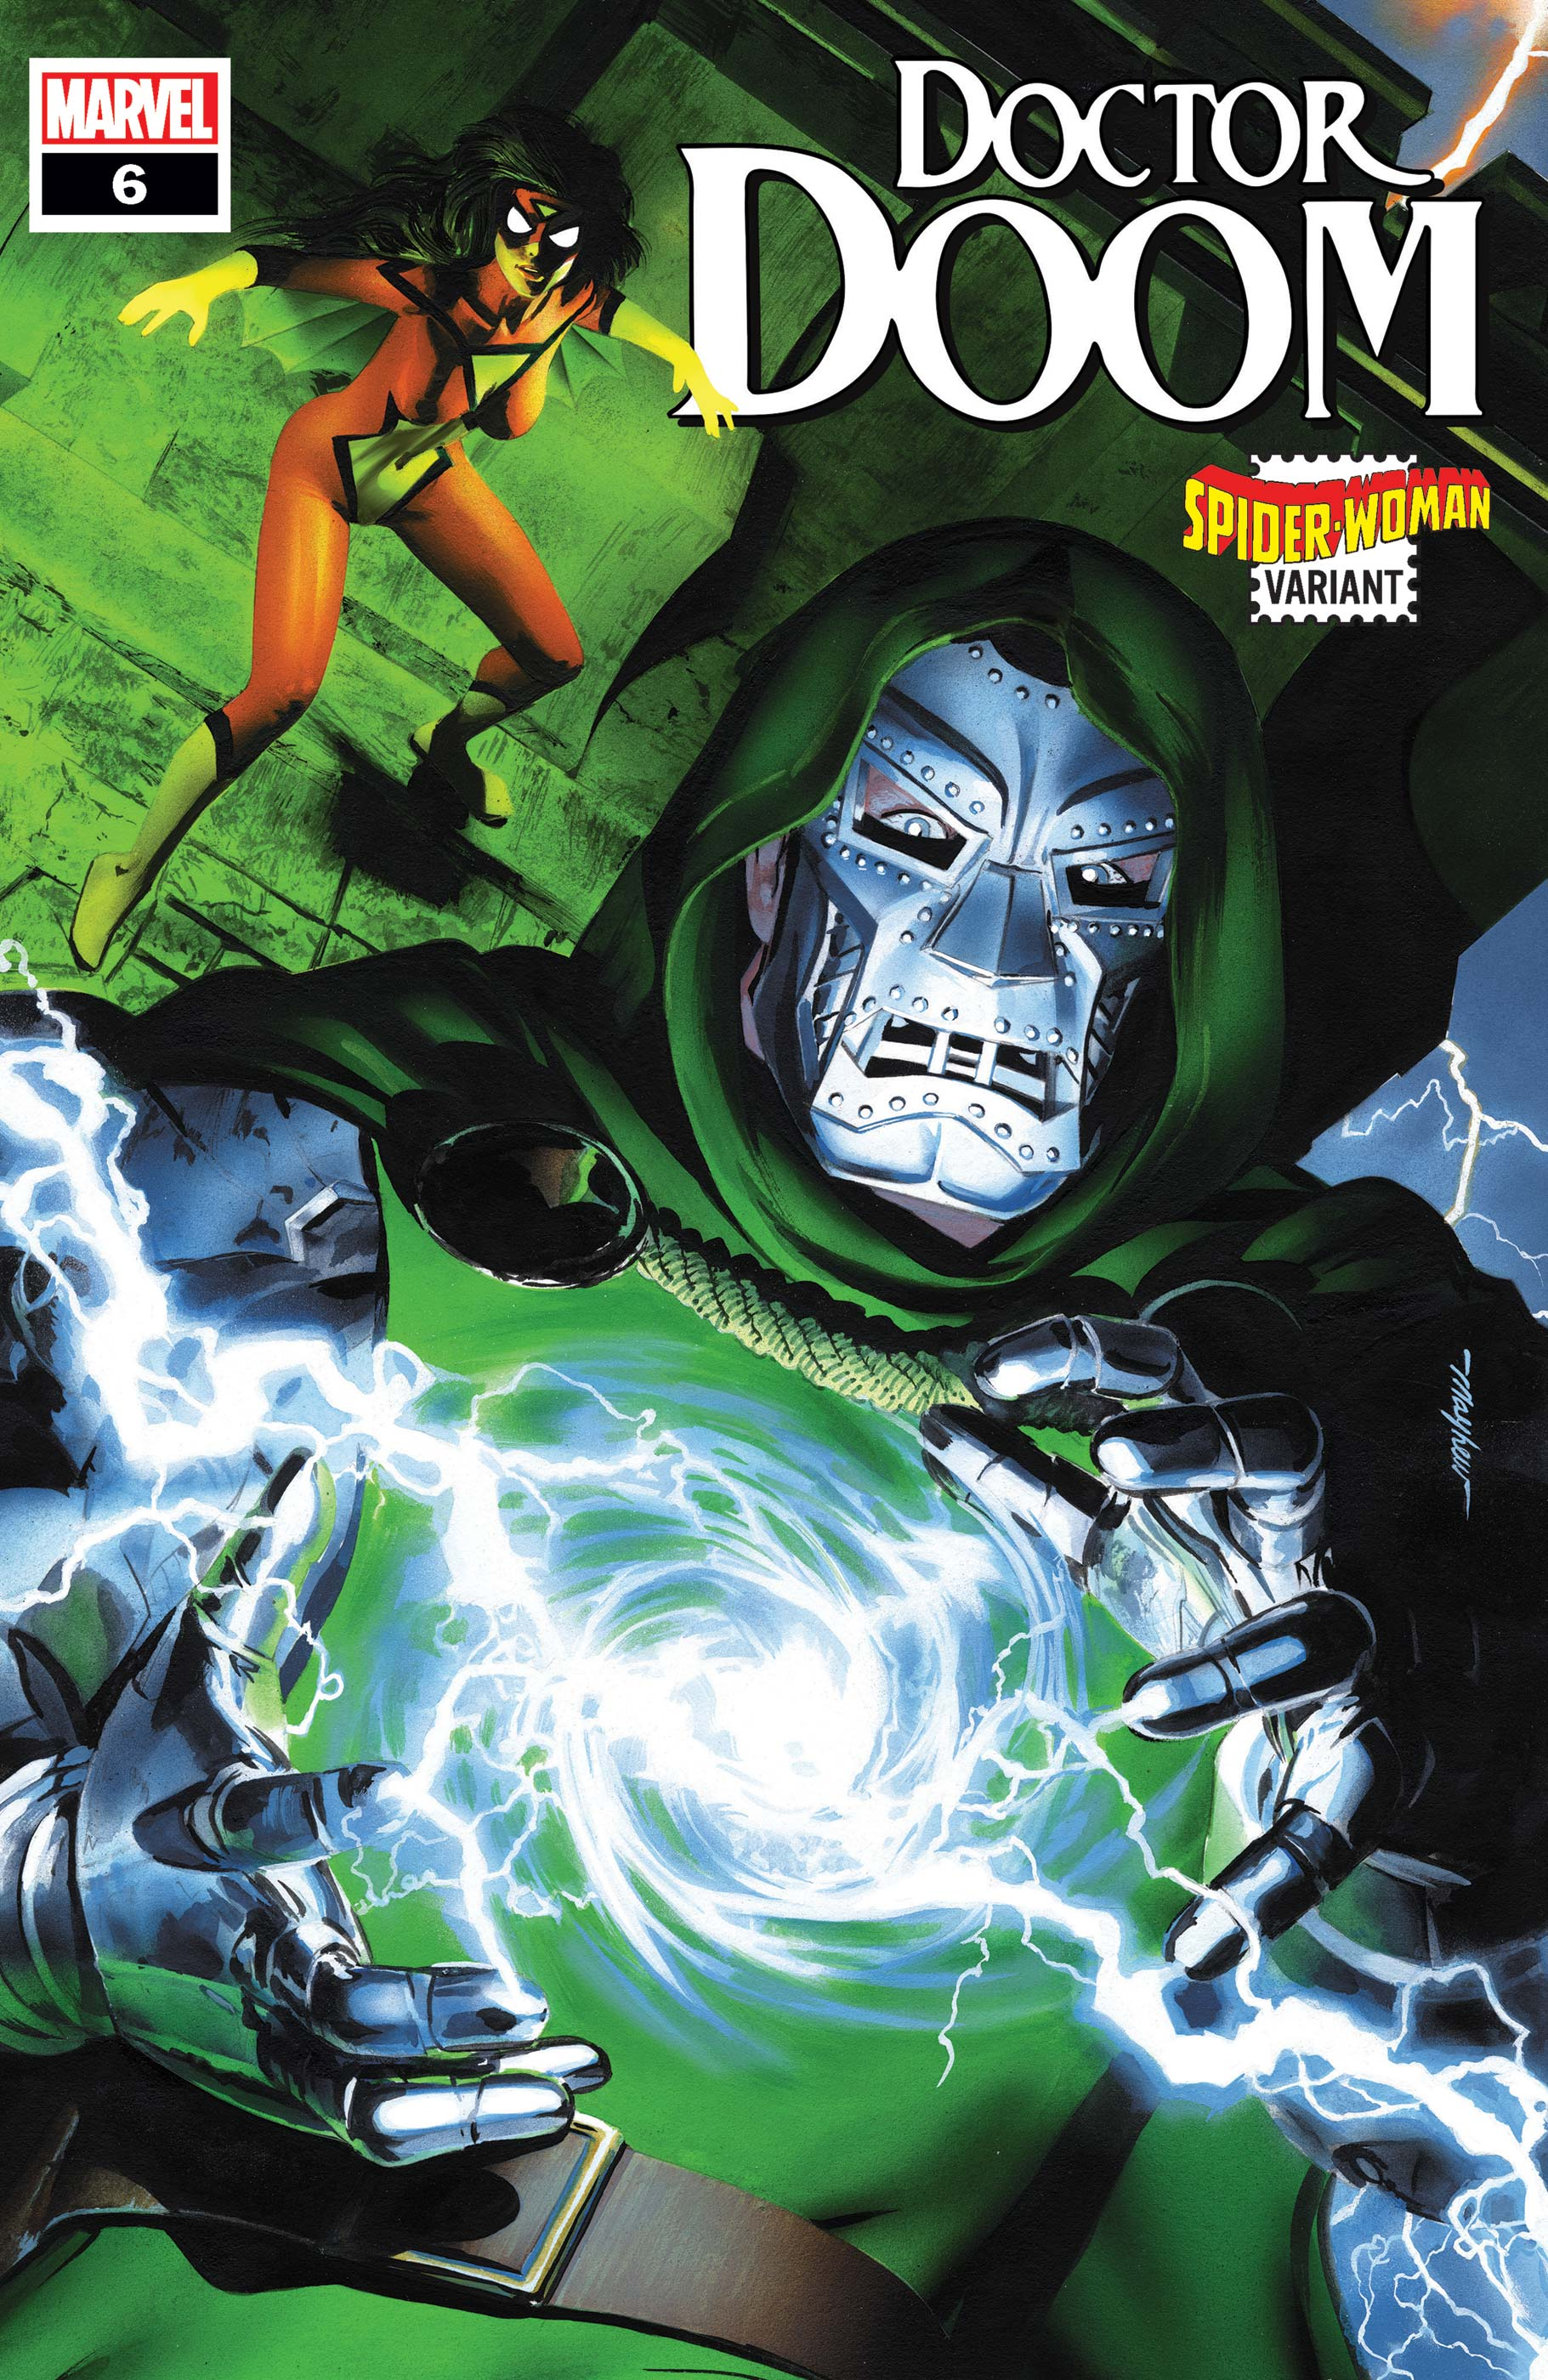 Doctor Doom (2019) #6 (Variant)